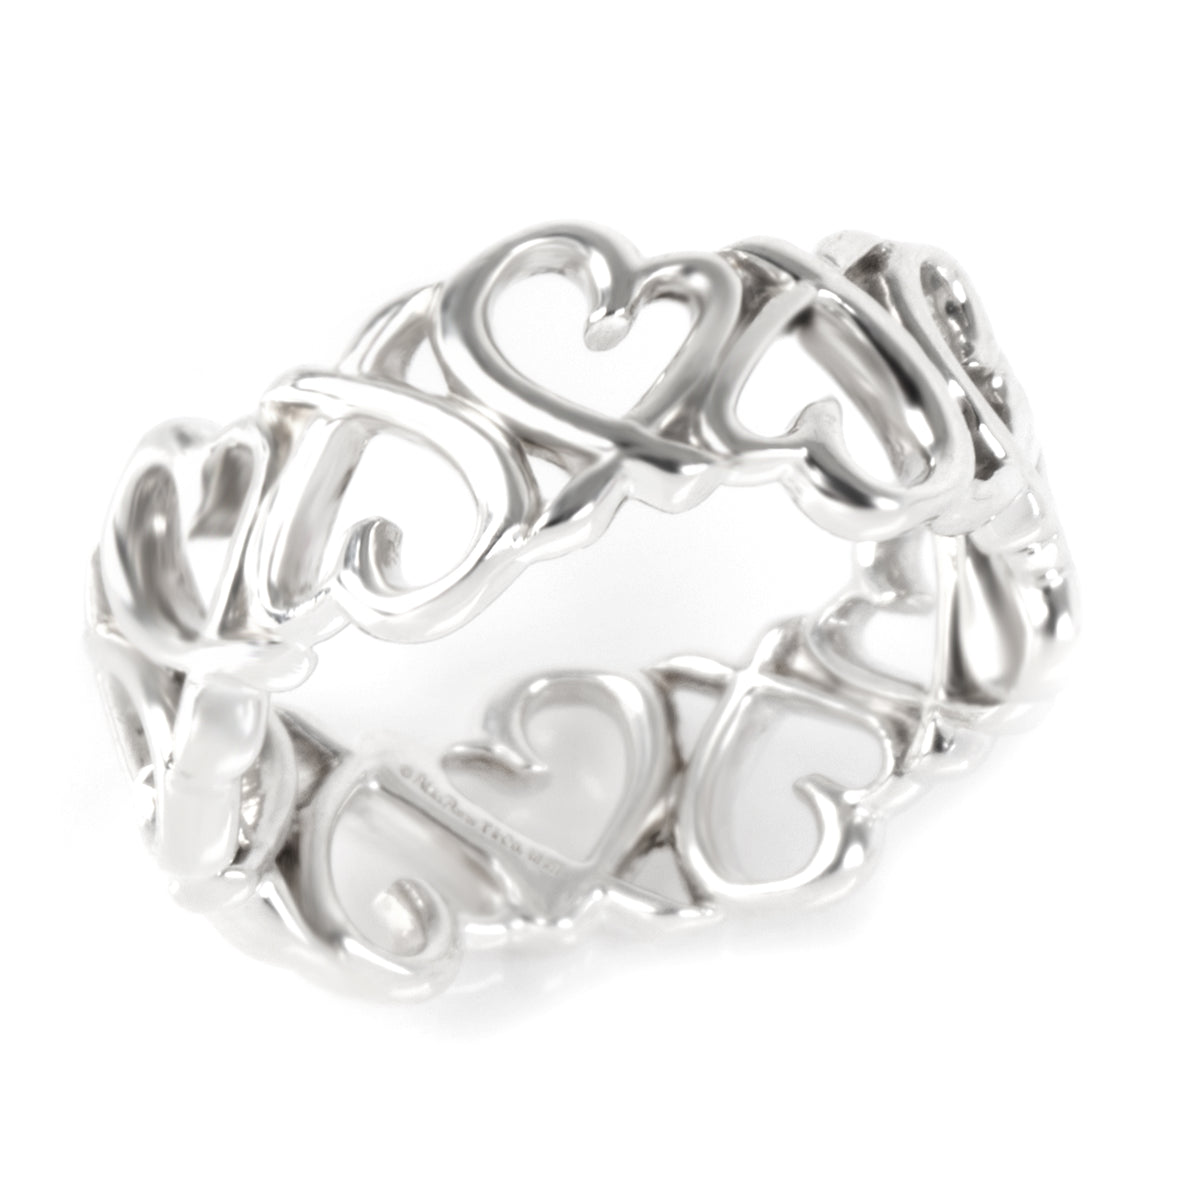 Tiffany & Co. Paloma Picasso Loving Heart in  Sterling Silver